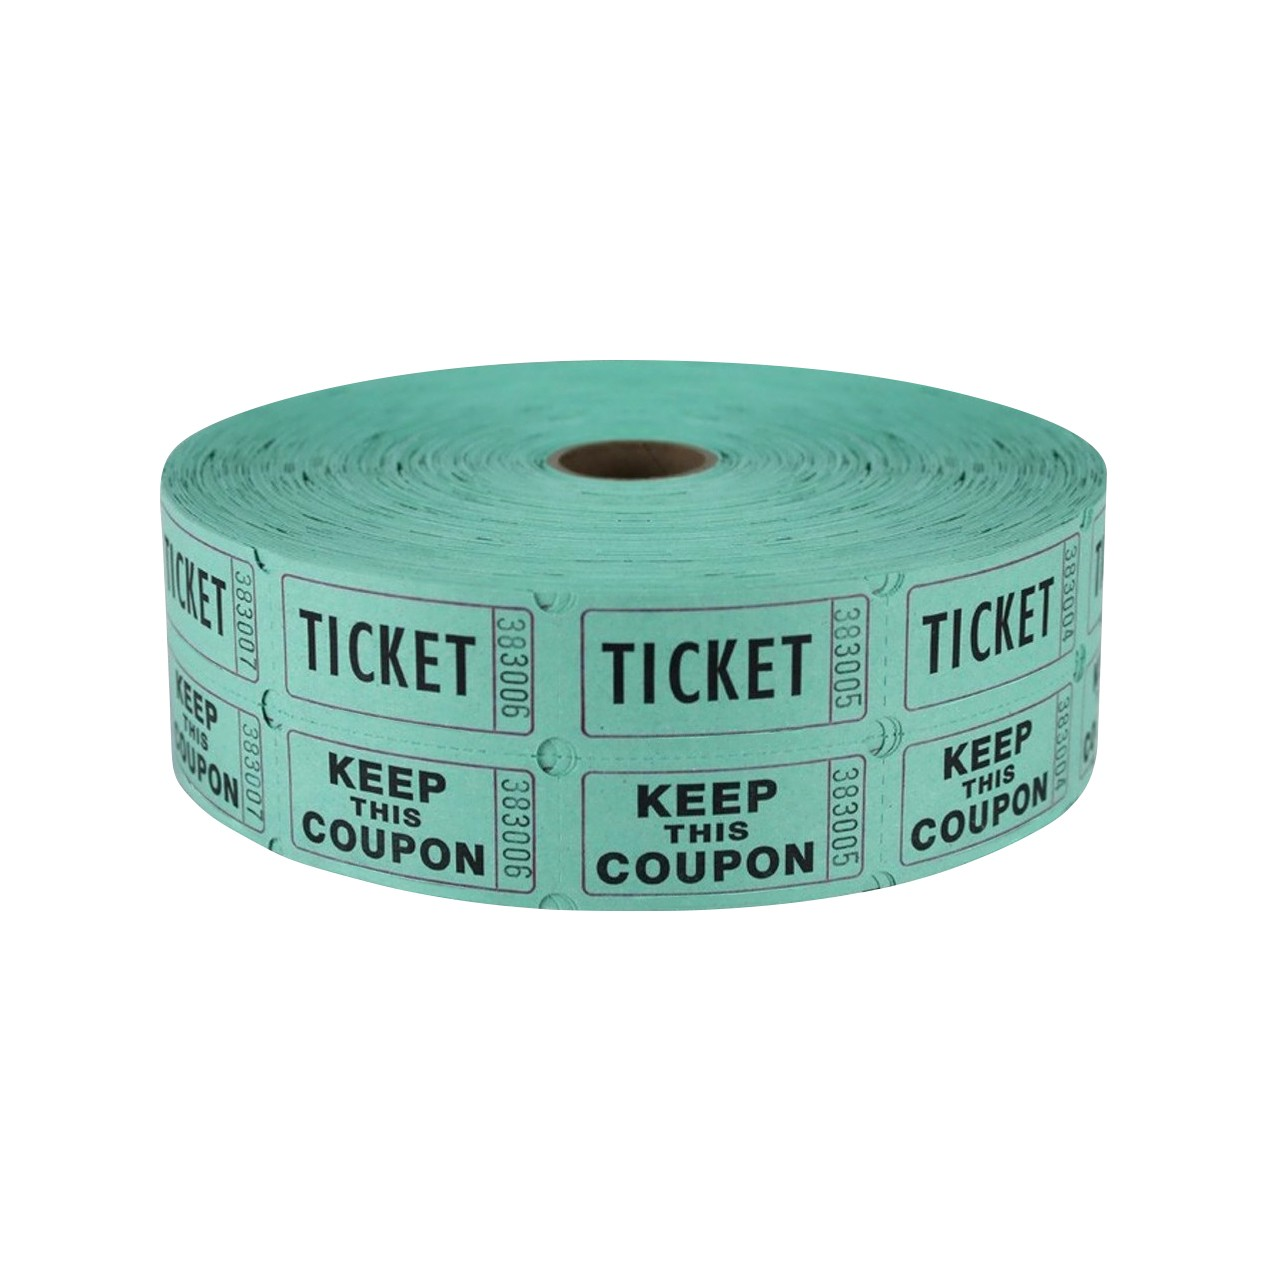 """TOTALPACK® 2 x 1"""" Double Coupon Tickets - """"Keep This Coupon"""", Green 2000 Tickets per Roll"""